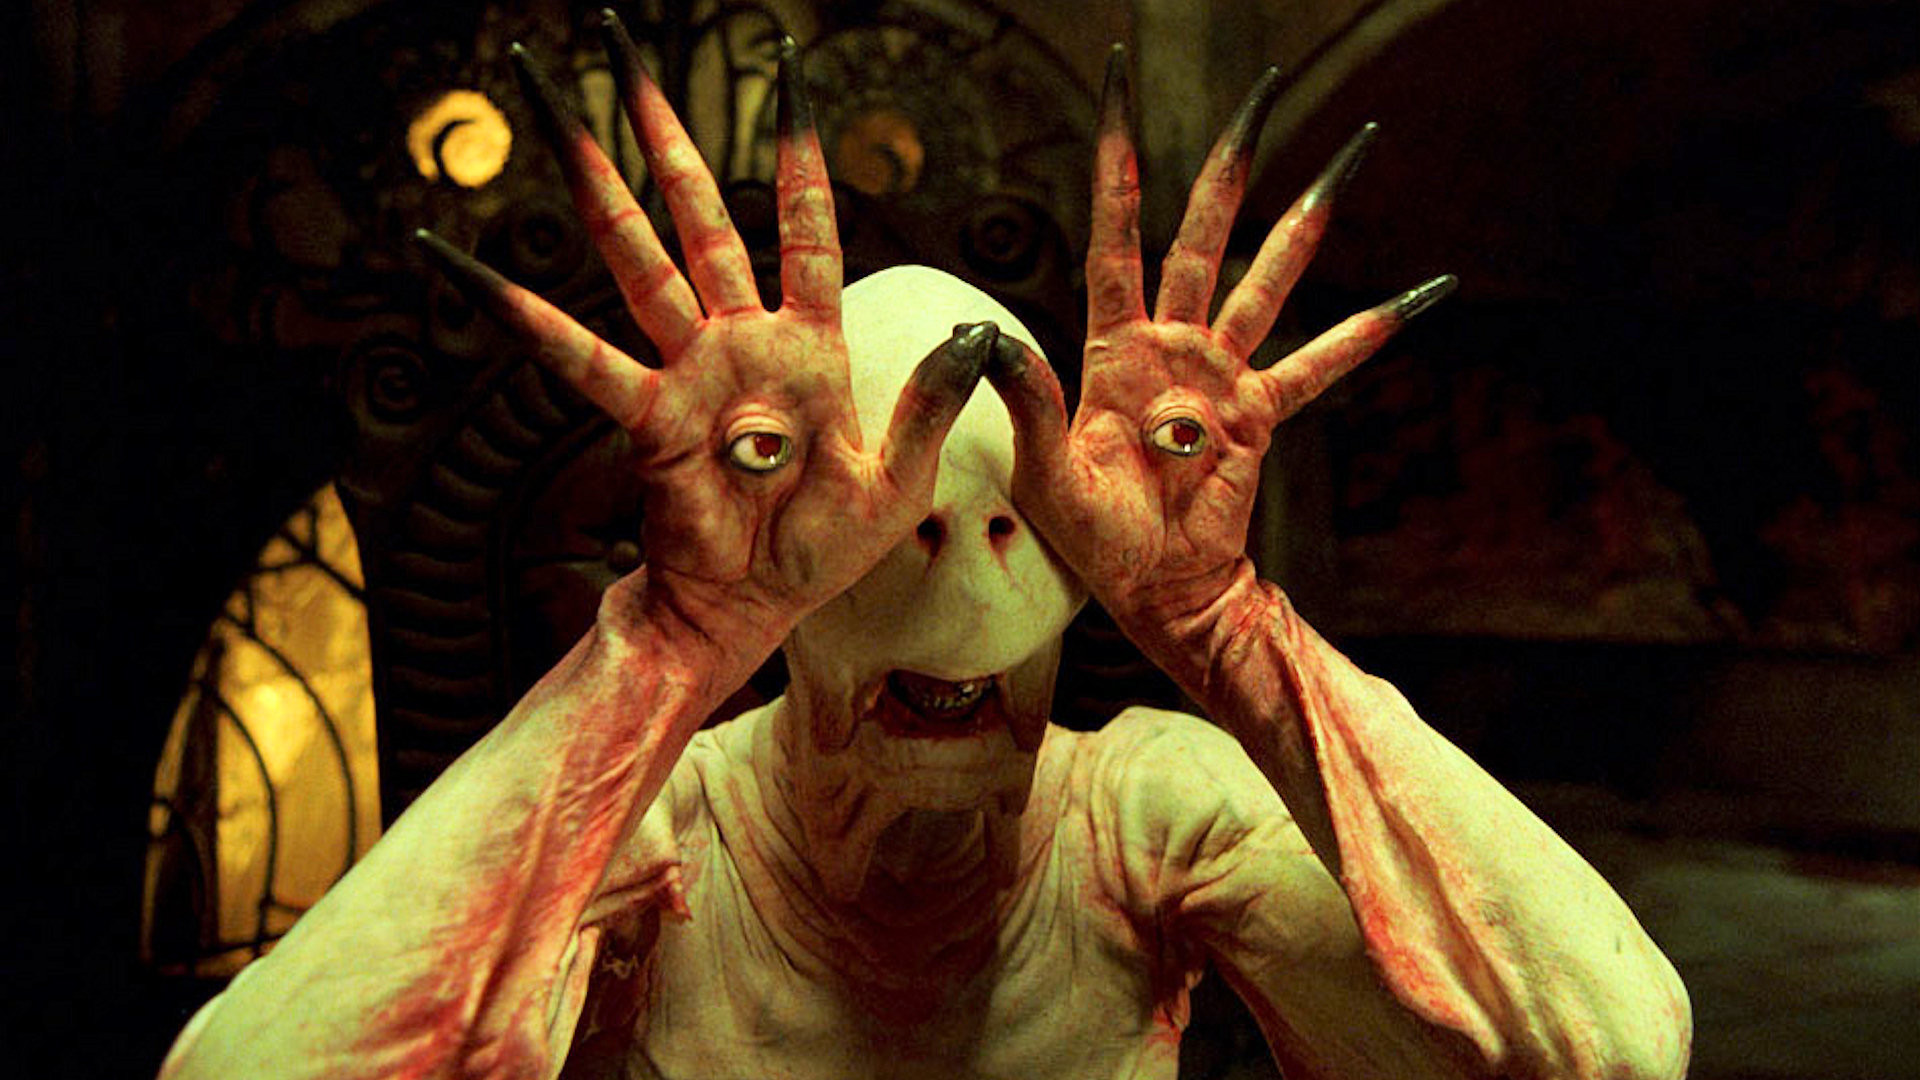 pans labyrinth Find great deals on ebay for pans labyrinth dvd and star wars trilogy dvd shop with confidence.